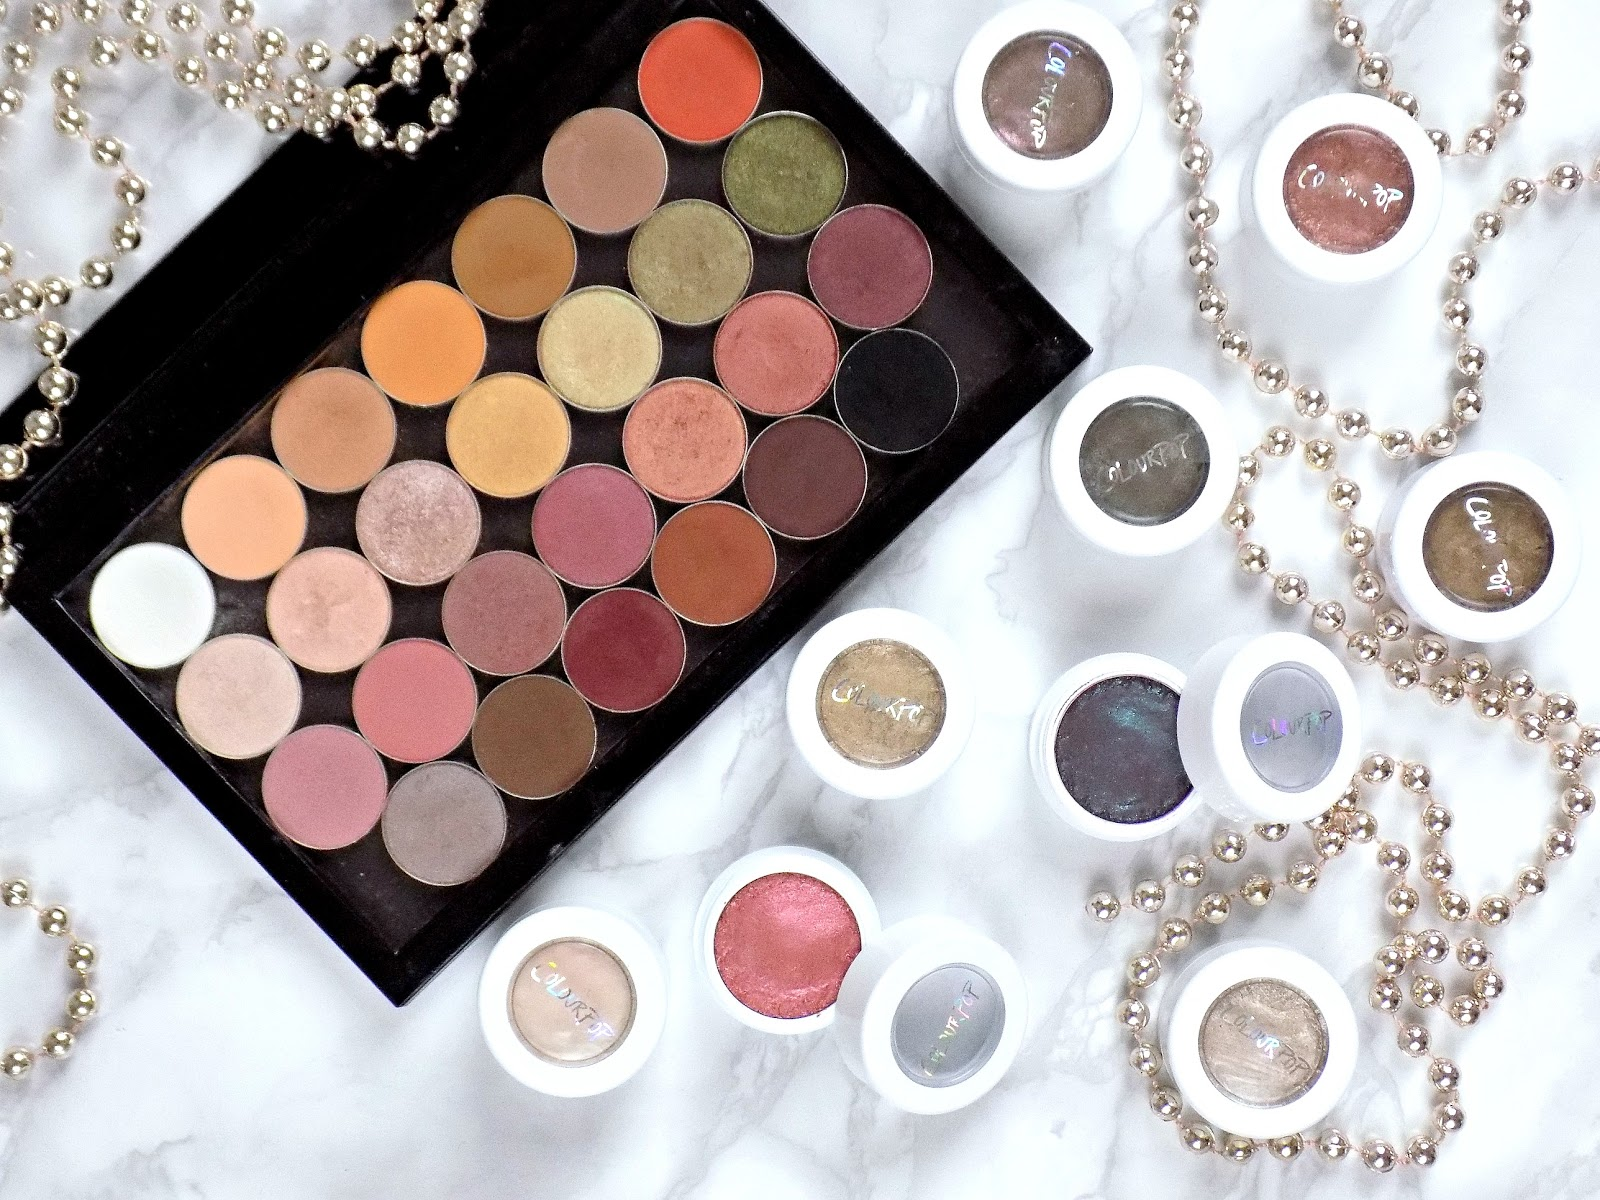 My favourite beauty discoveries of 2016 - makeup geek eyeshadows